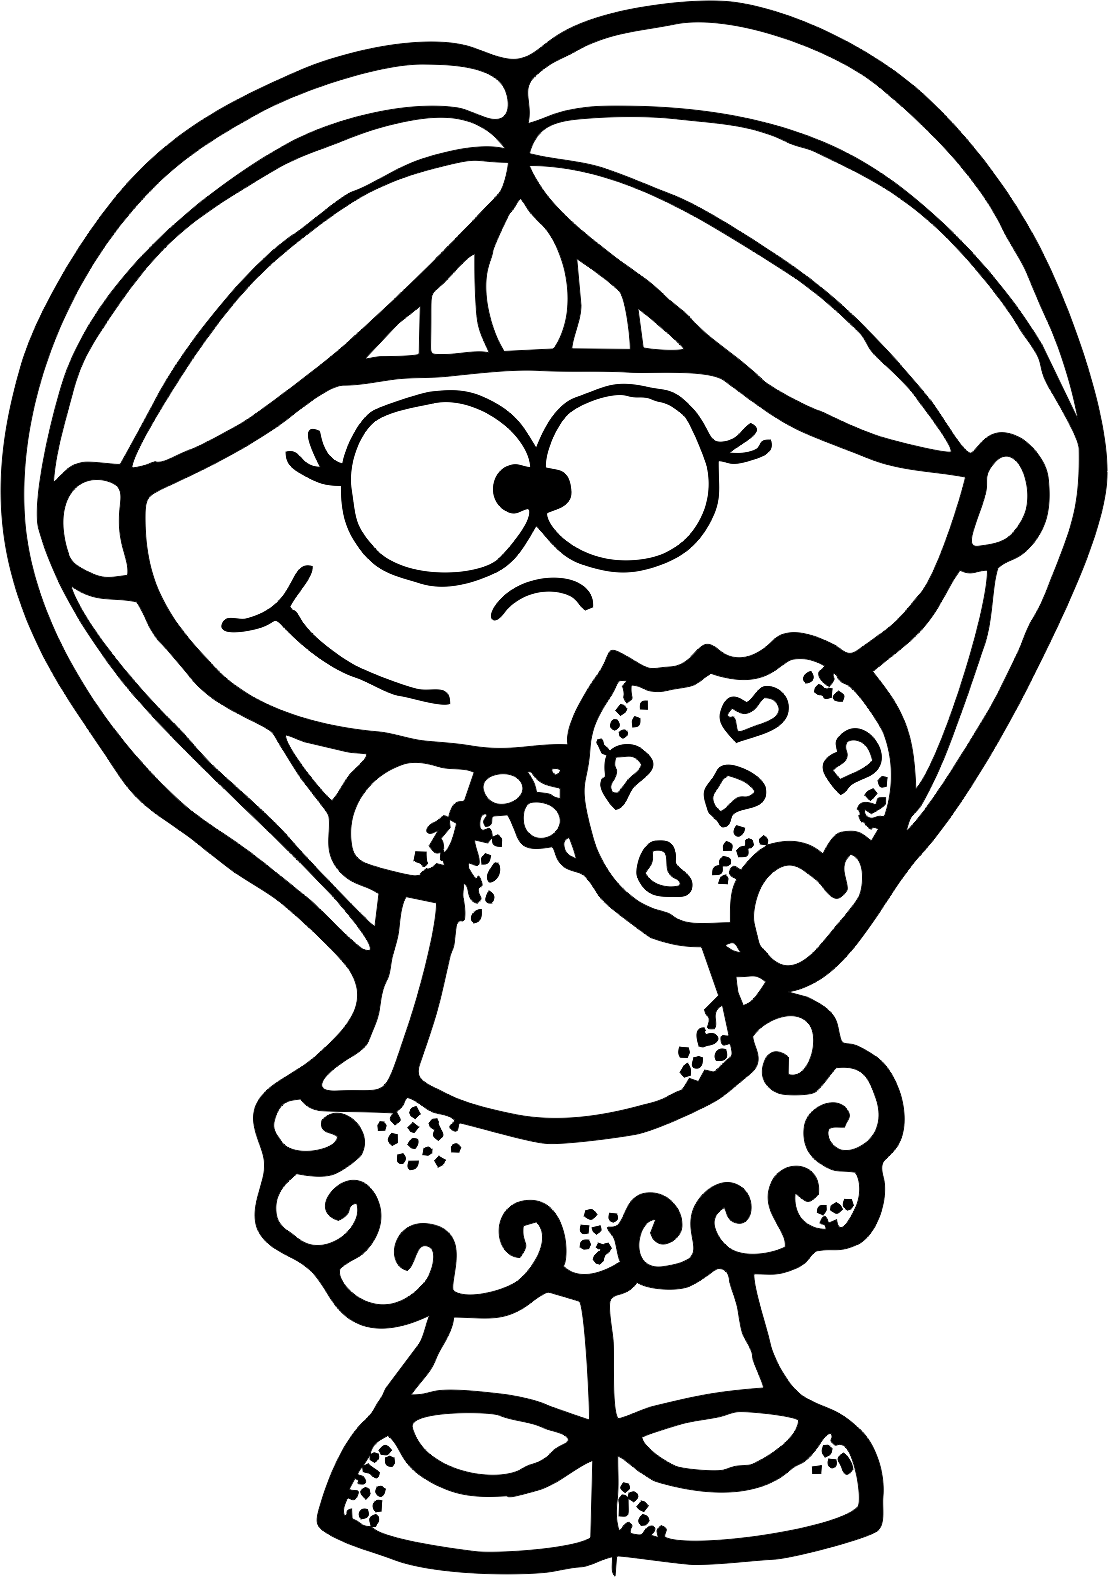 Coloring clipart shopkins. Cookie girl bw png